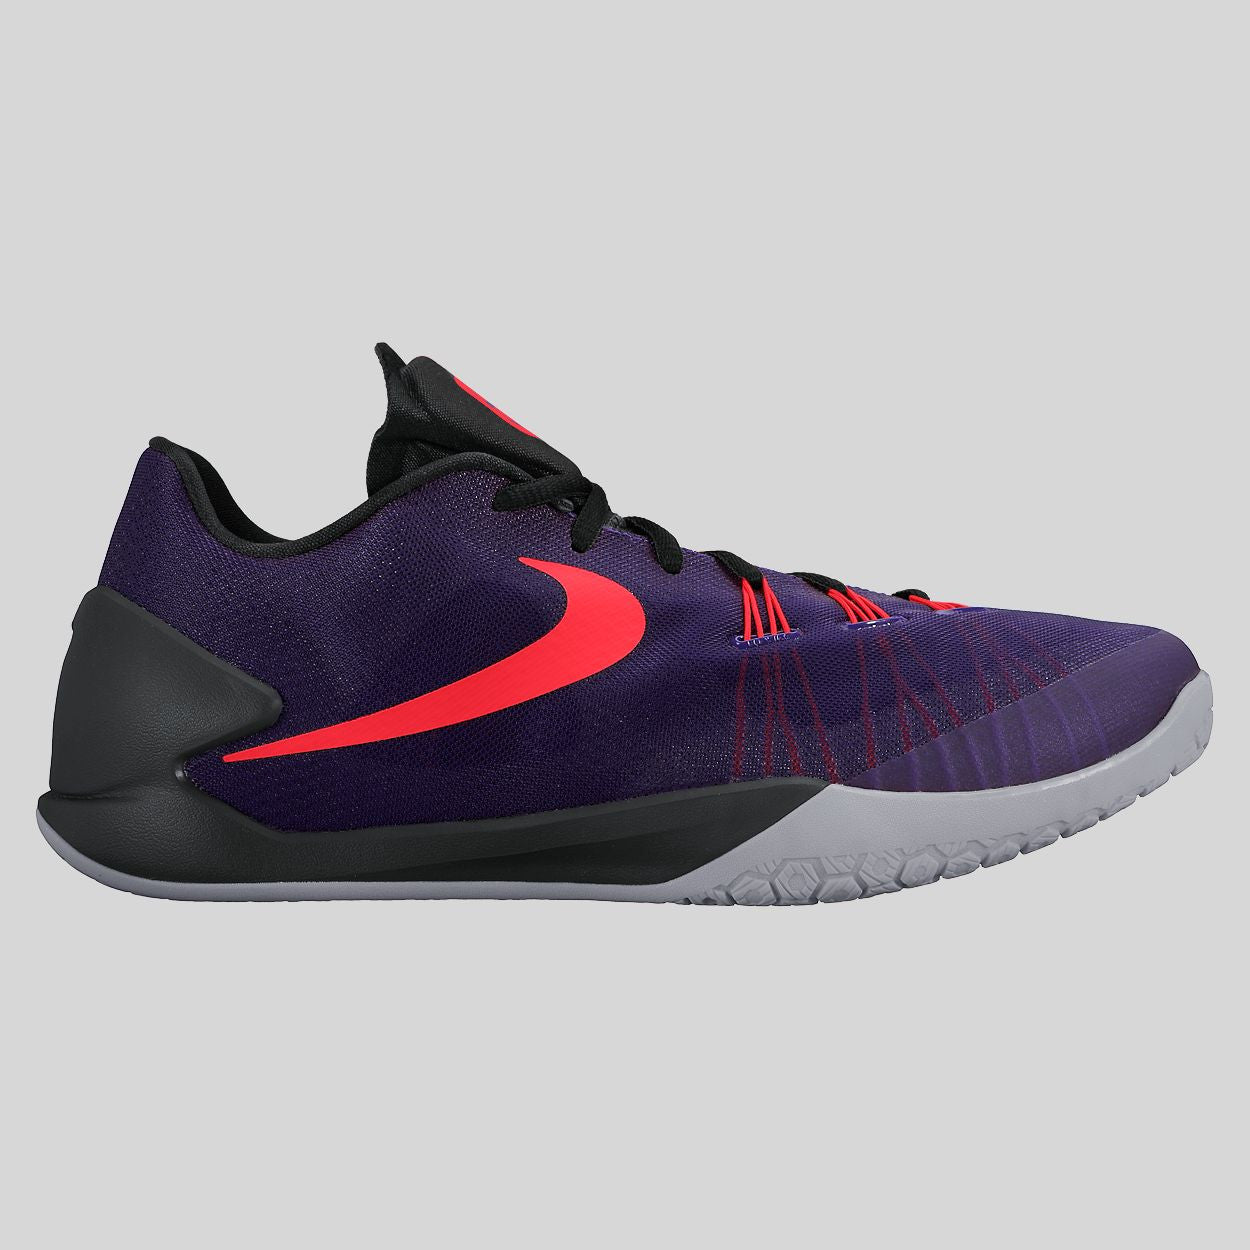 Nike Hyperchase EP Court Purple Bright Crimson (705364-560)